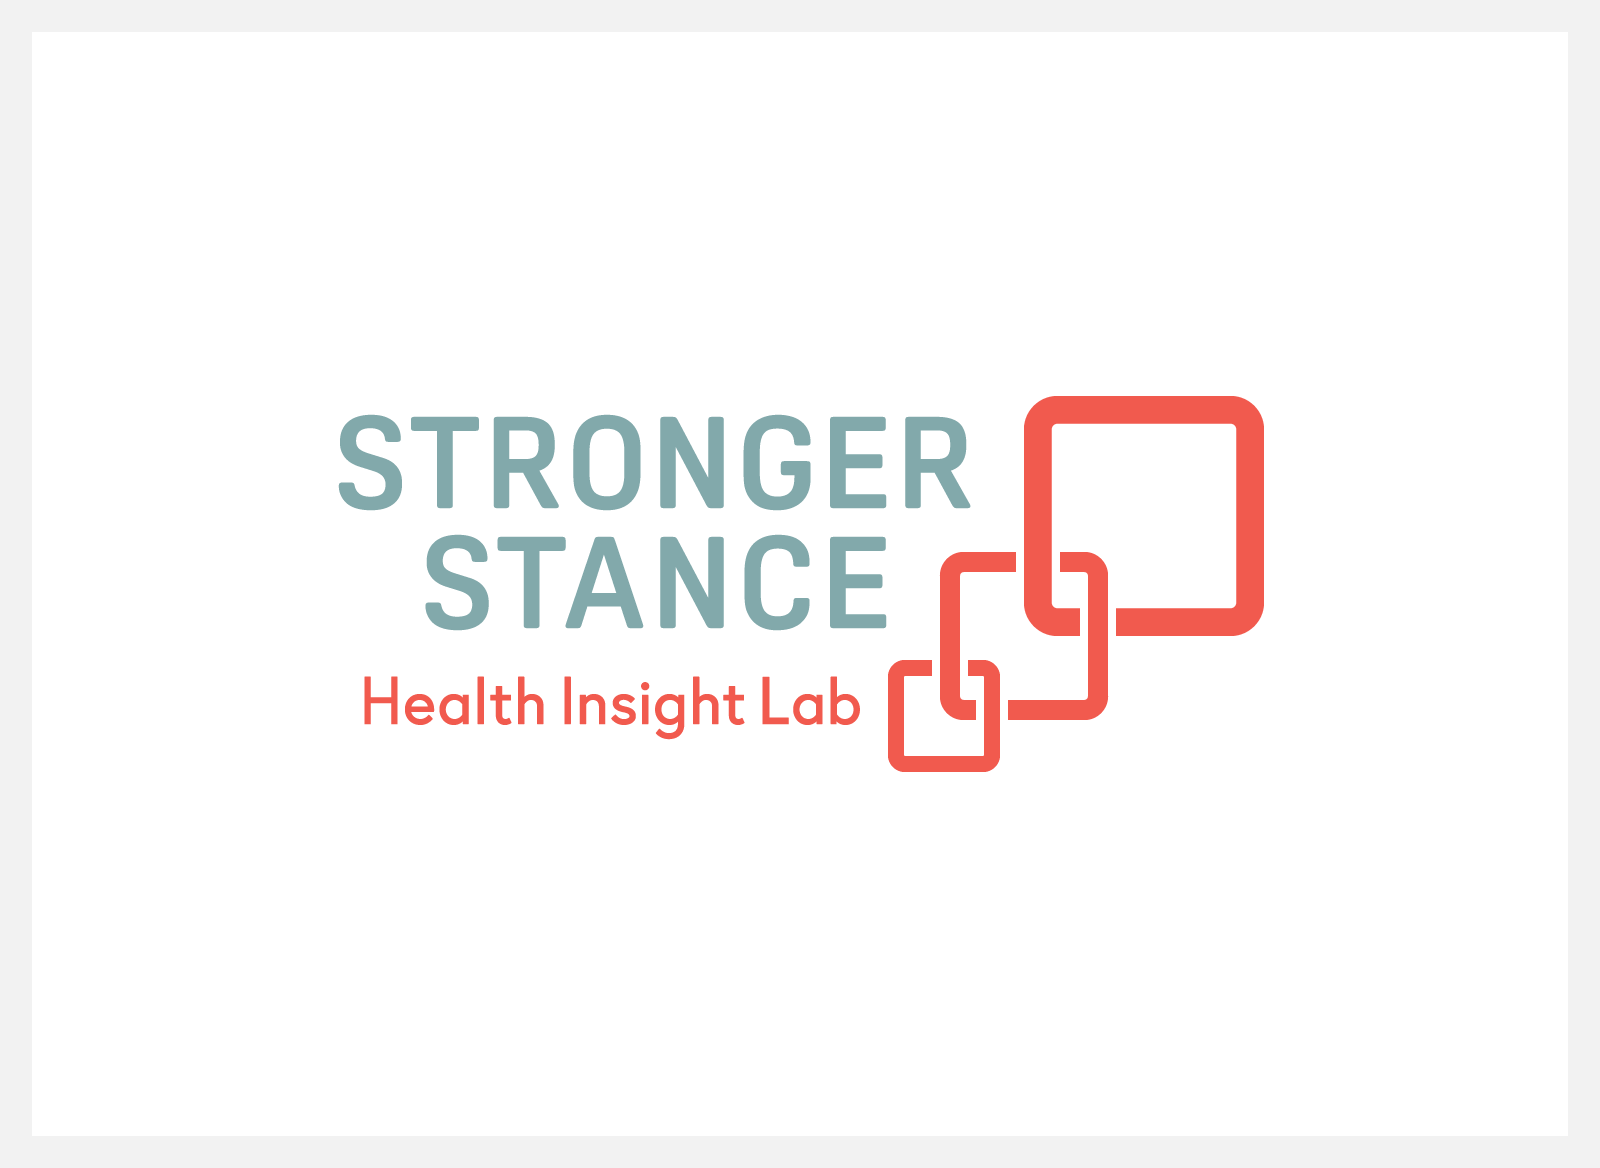 jkdc_healthinsight-program-strongerstance.png